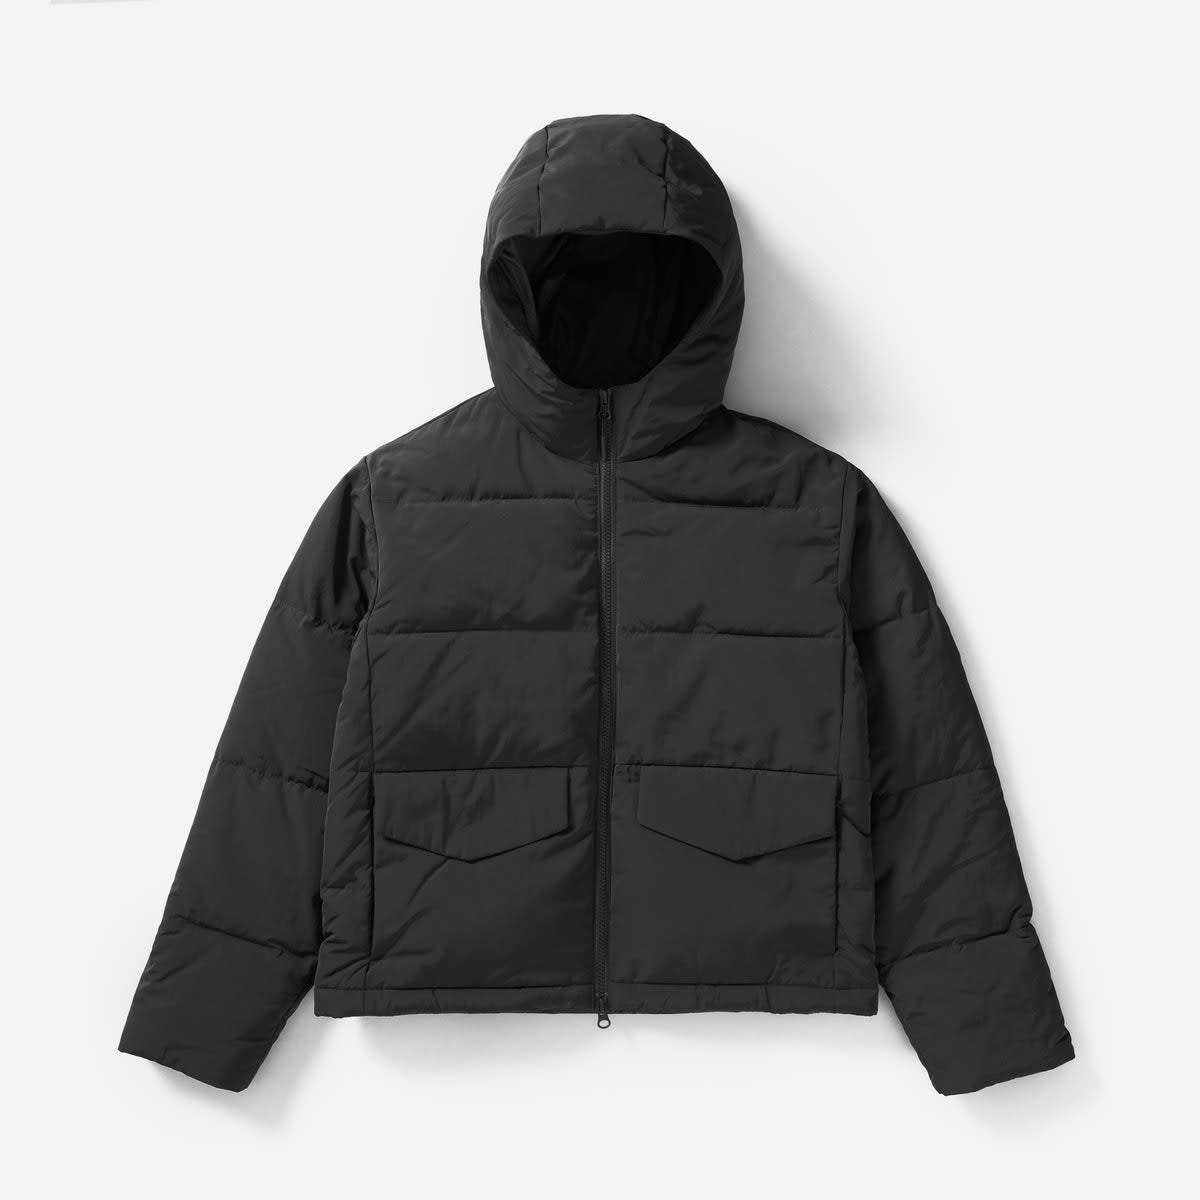 Women's Short Puffer Jacket, $125, available at Everlane.